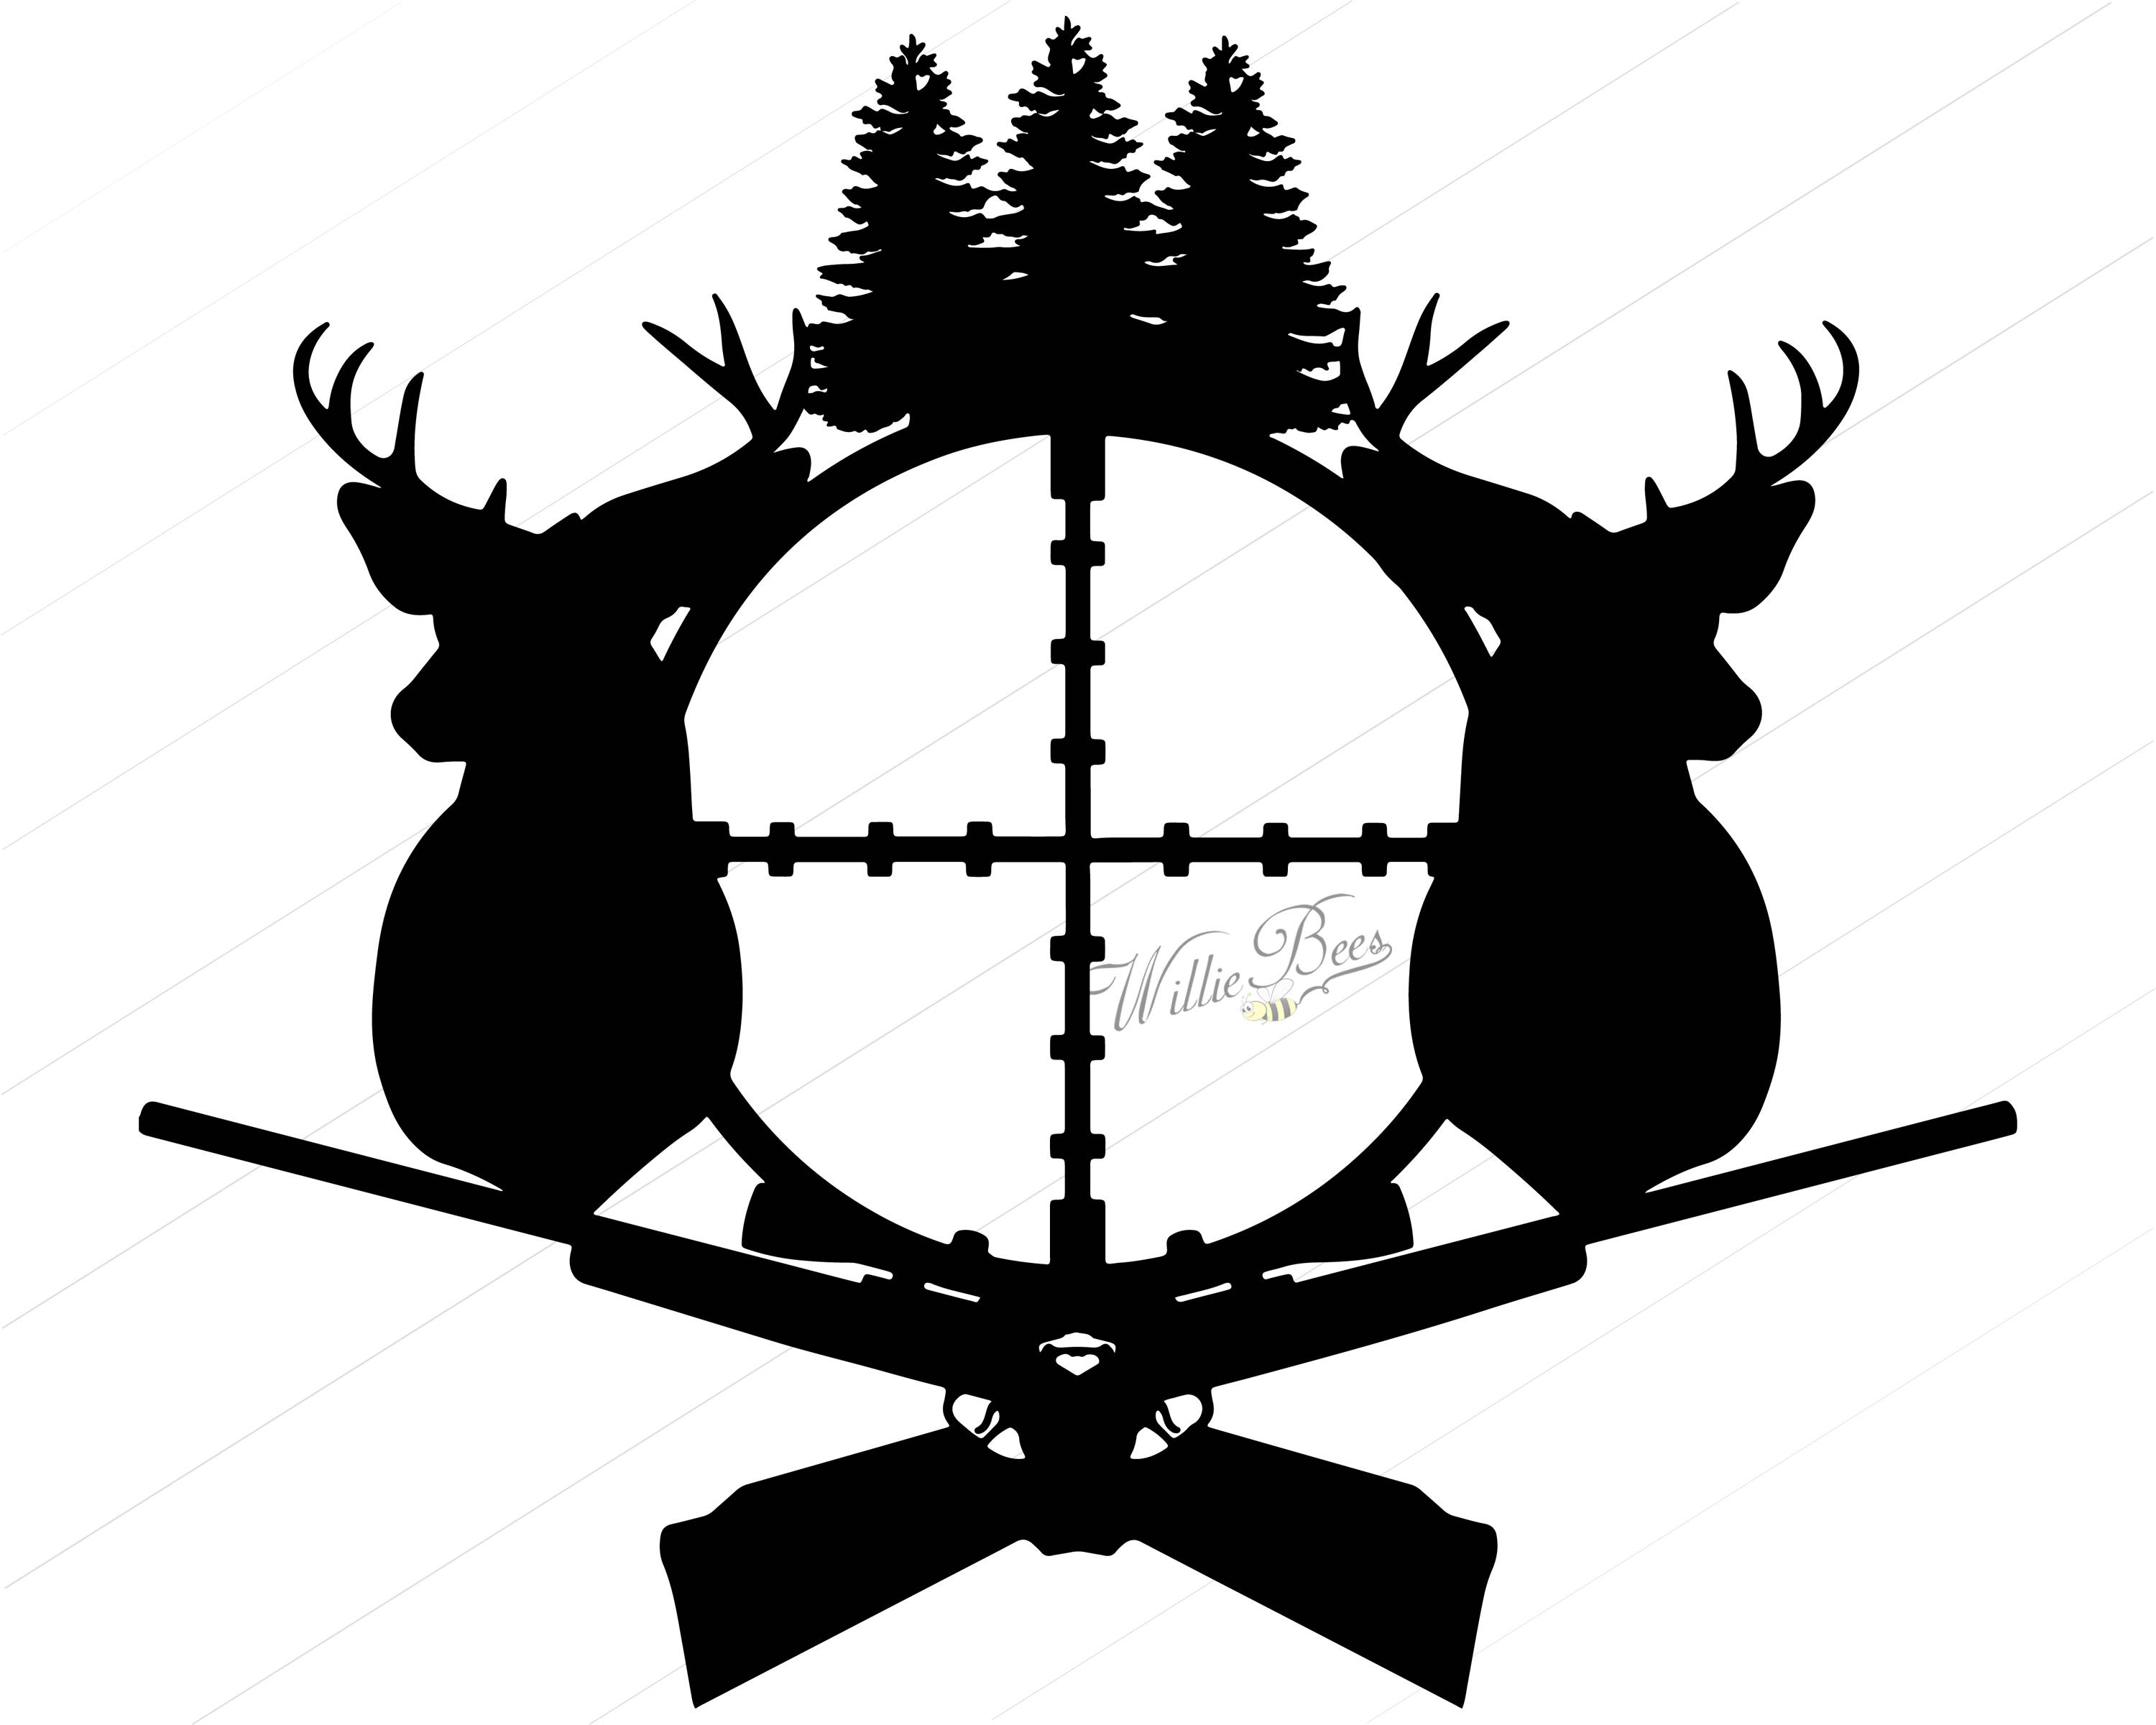 3000x2400 Deer Hunting Silhouette Clipart Gone Hunting Deer Rifle